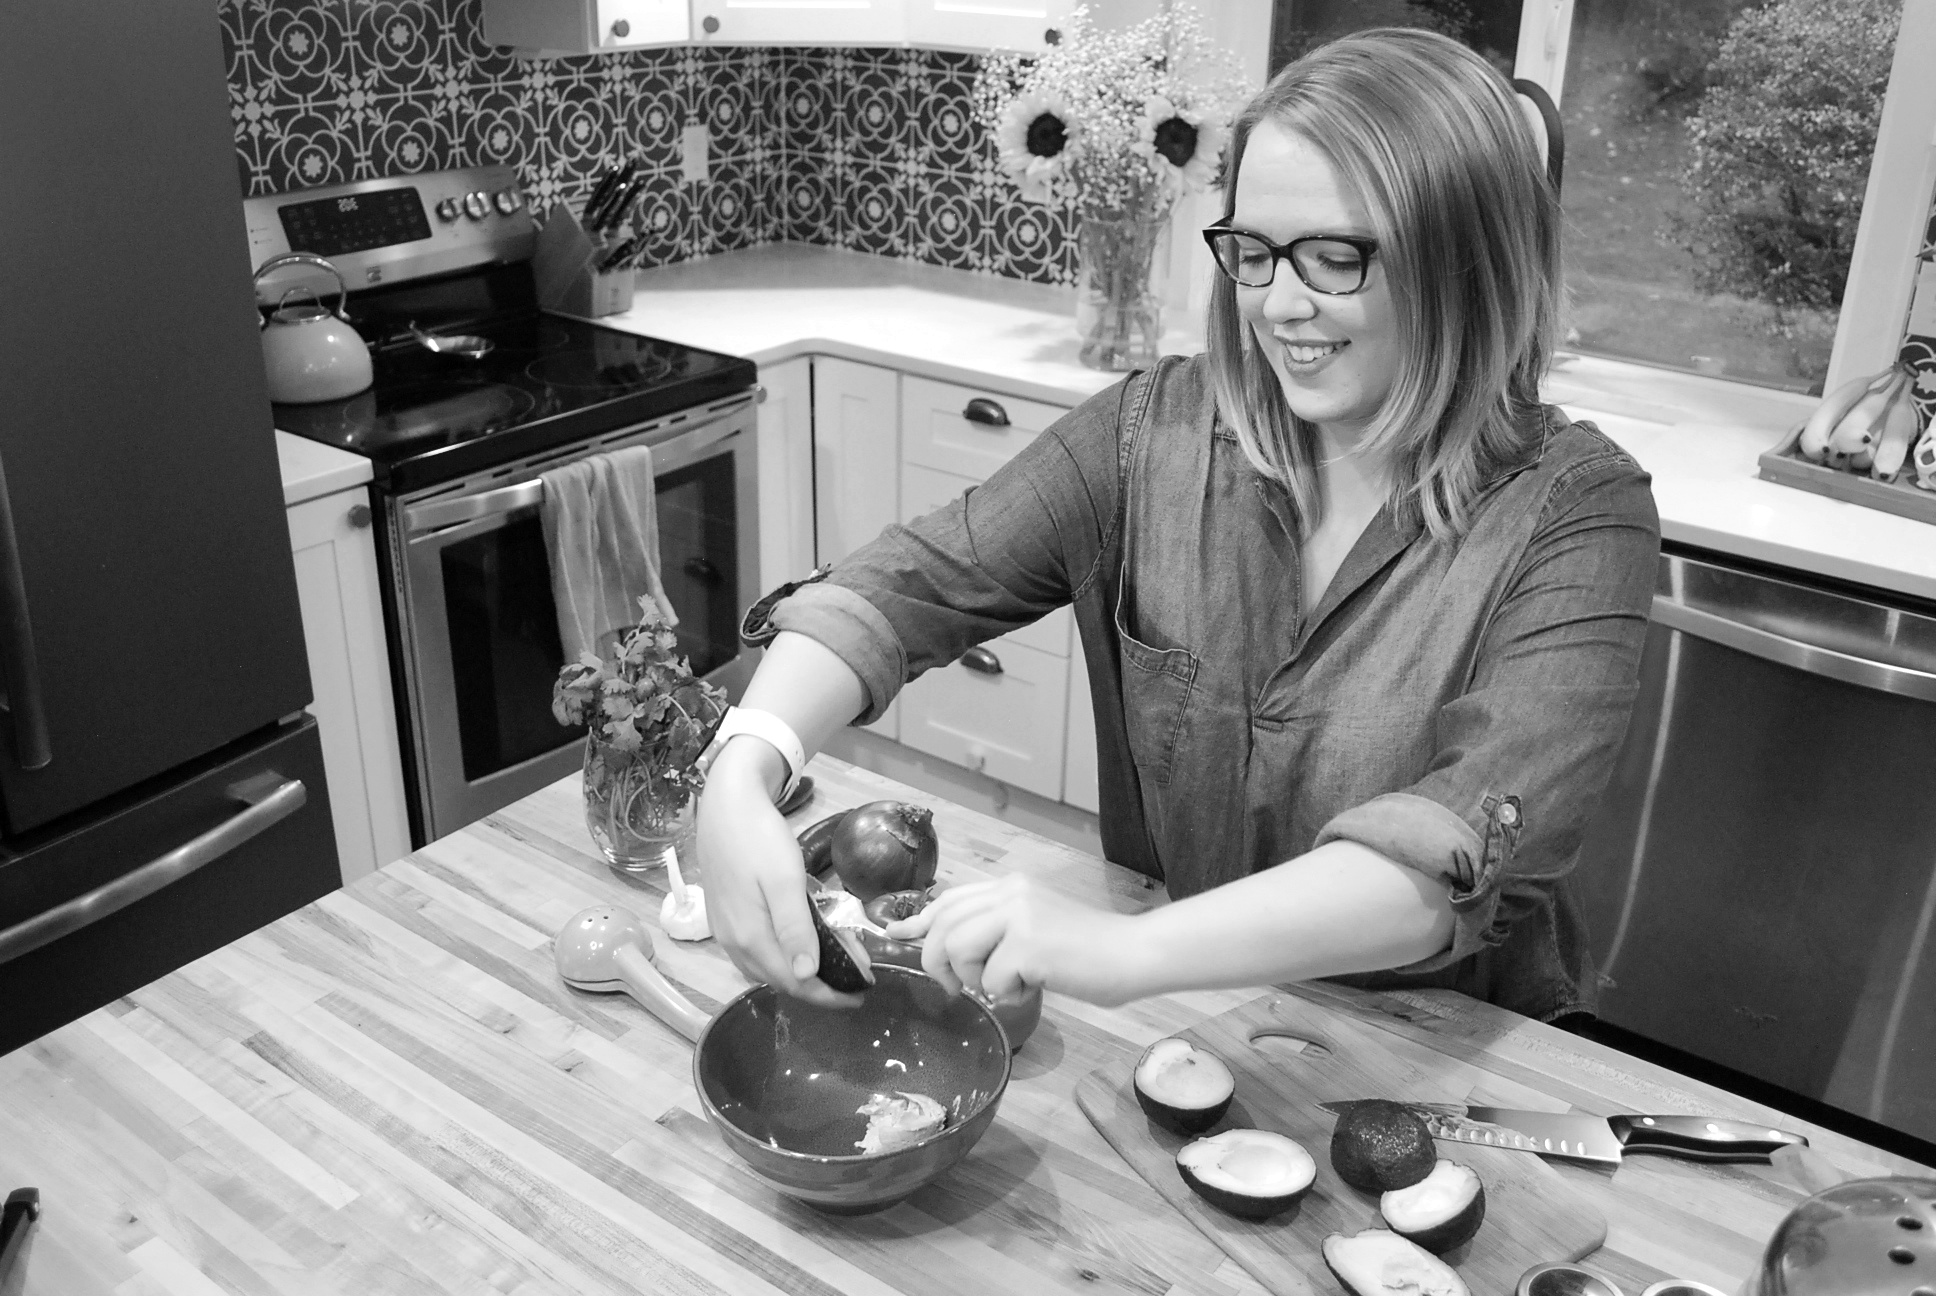 Cassie Christopher is cooking healthy foods to reduce emotional eating for her clients.